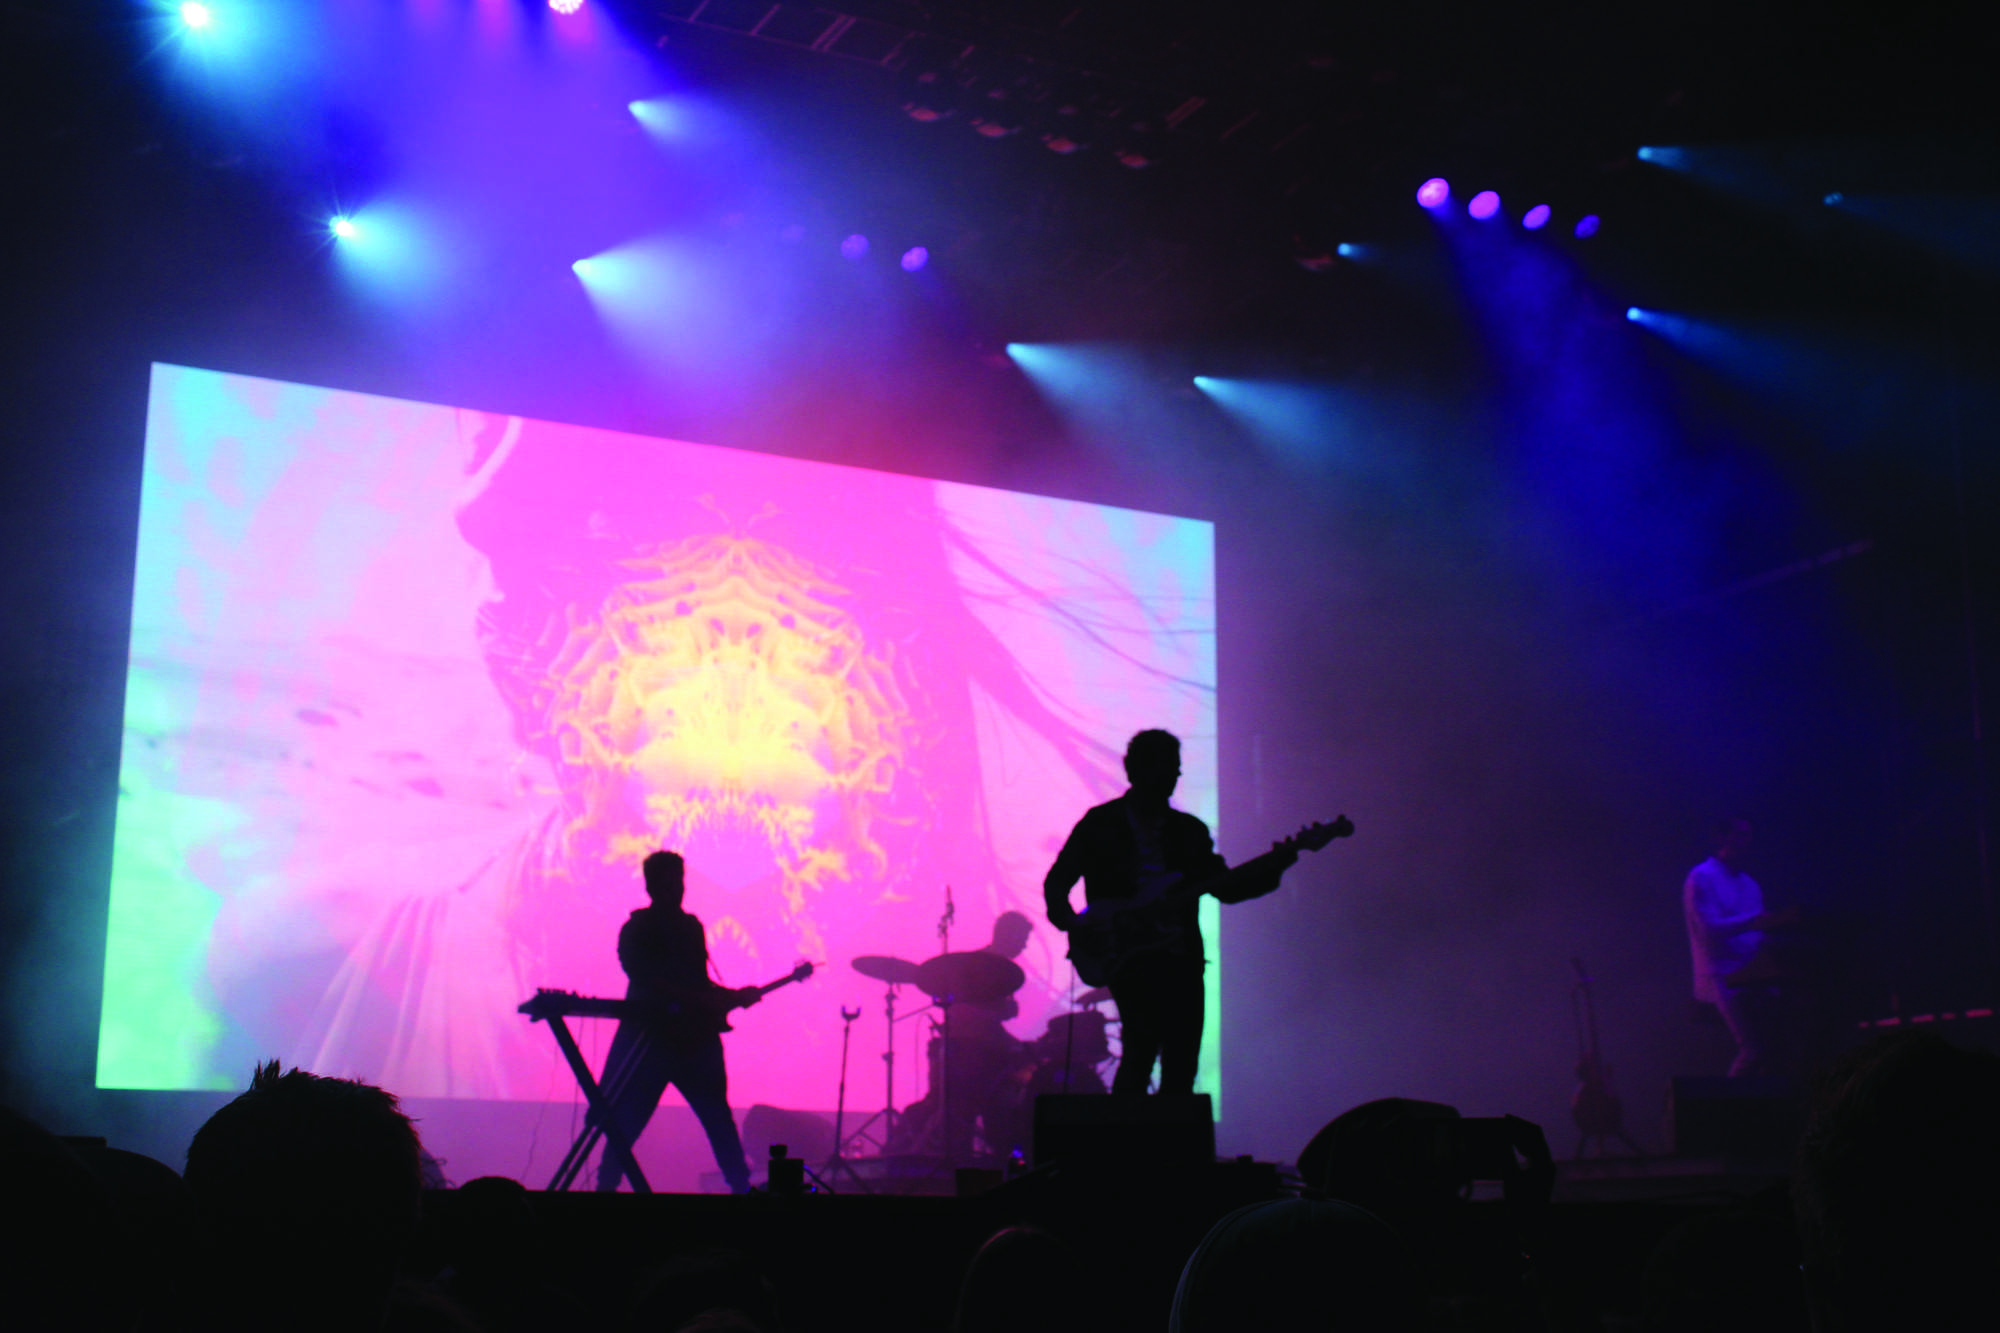 Tycho performs at the Power Plant stage. Tycho played songs from their 2016 album Epoch, among others. Photo credit: Caleb Beck